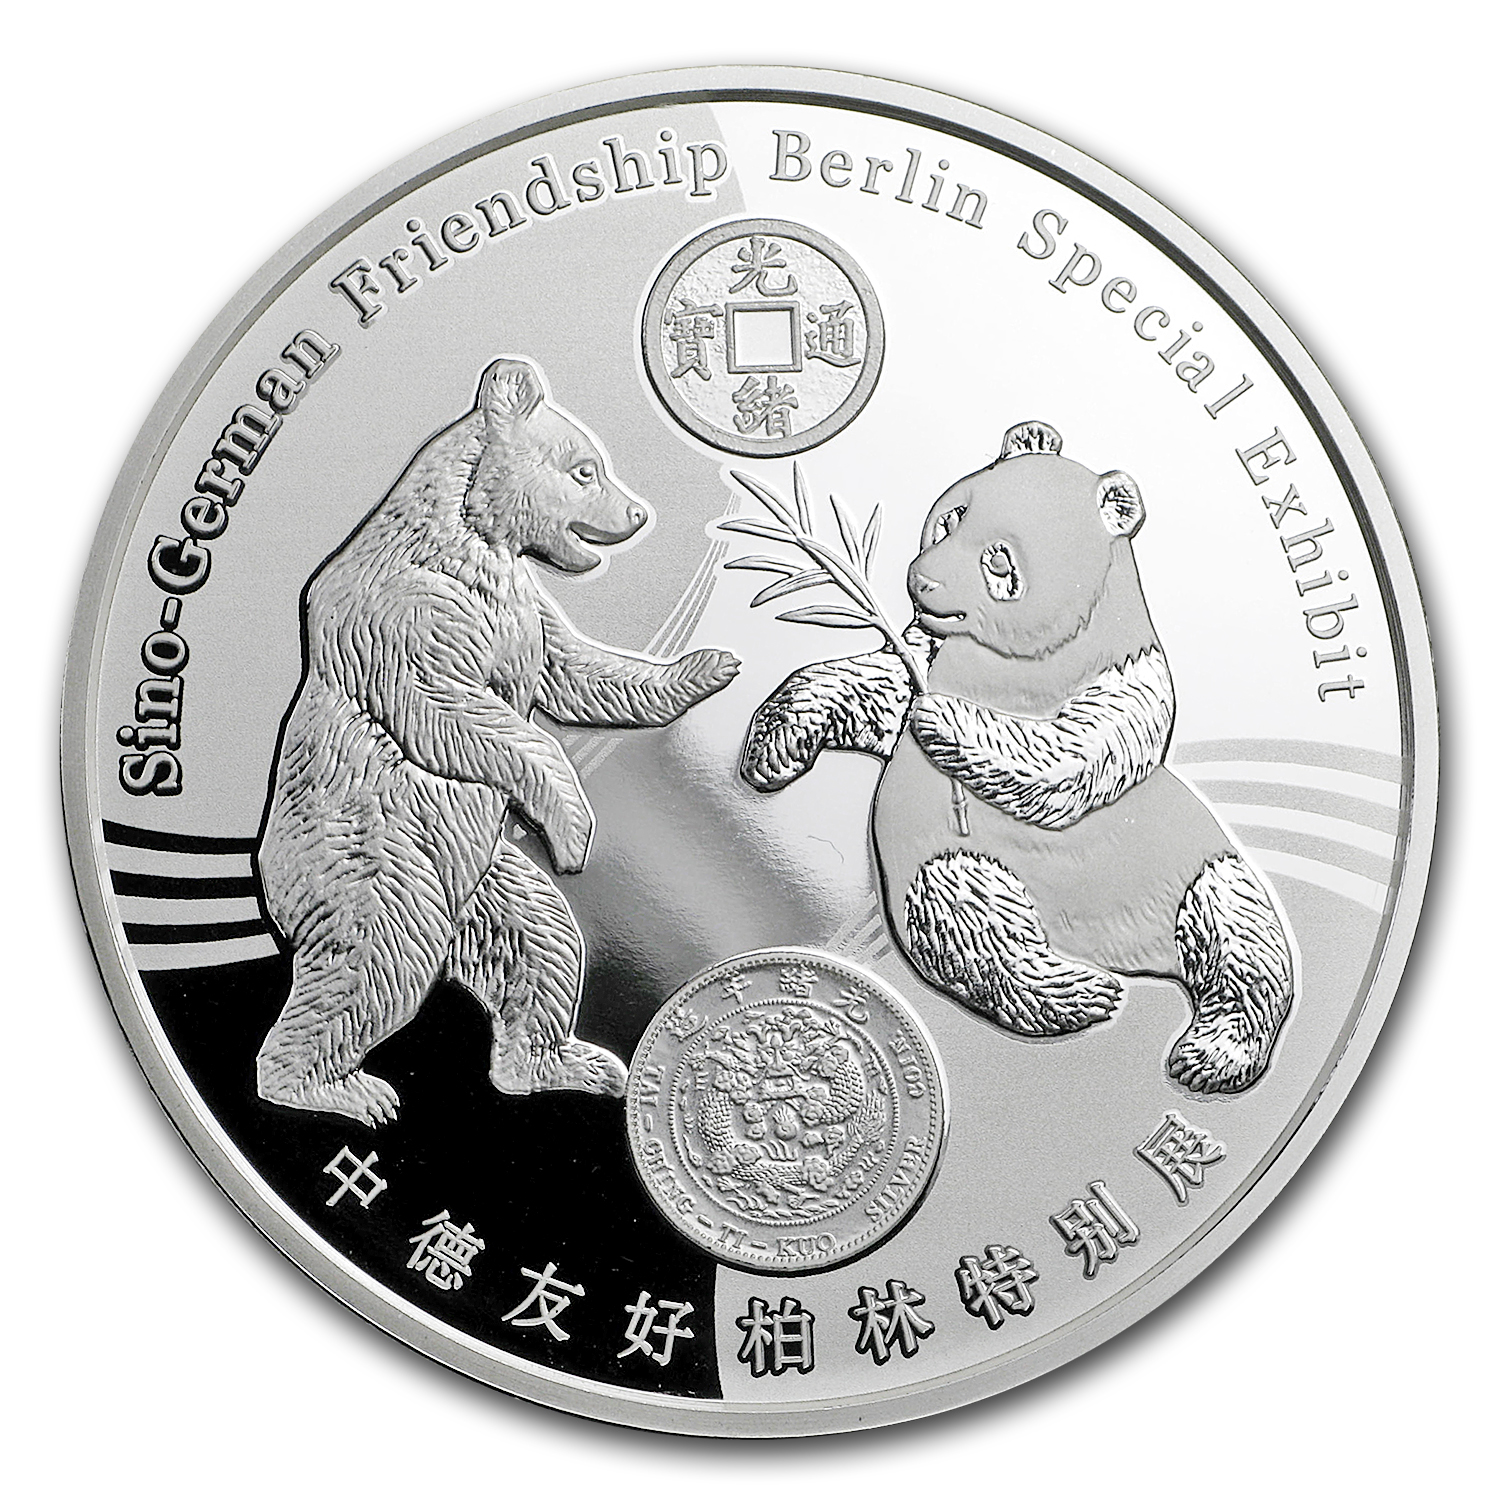 2017 China 1 oz Silver Panda Proof (Berlin World Money Fair)